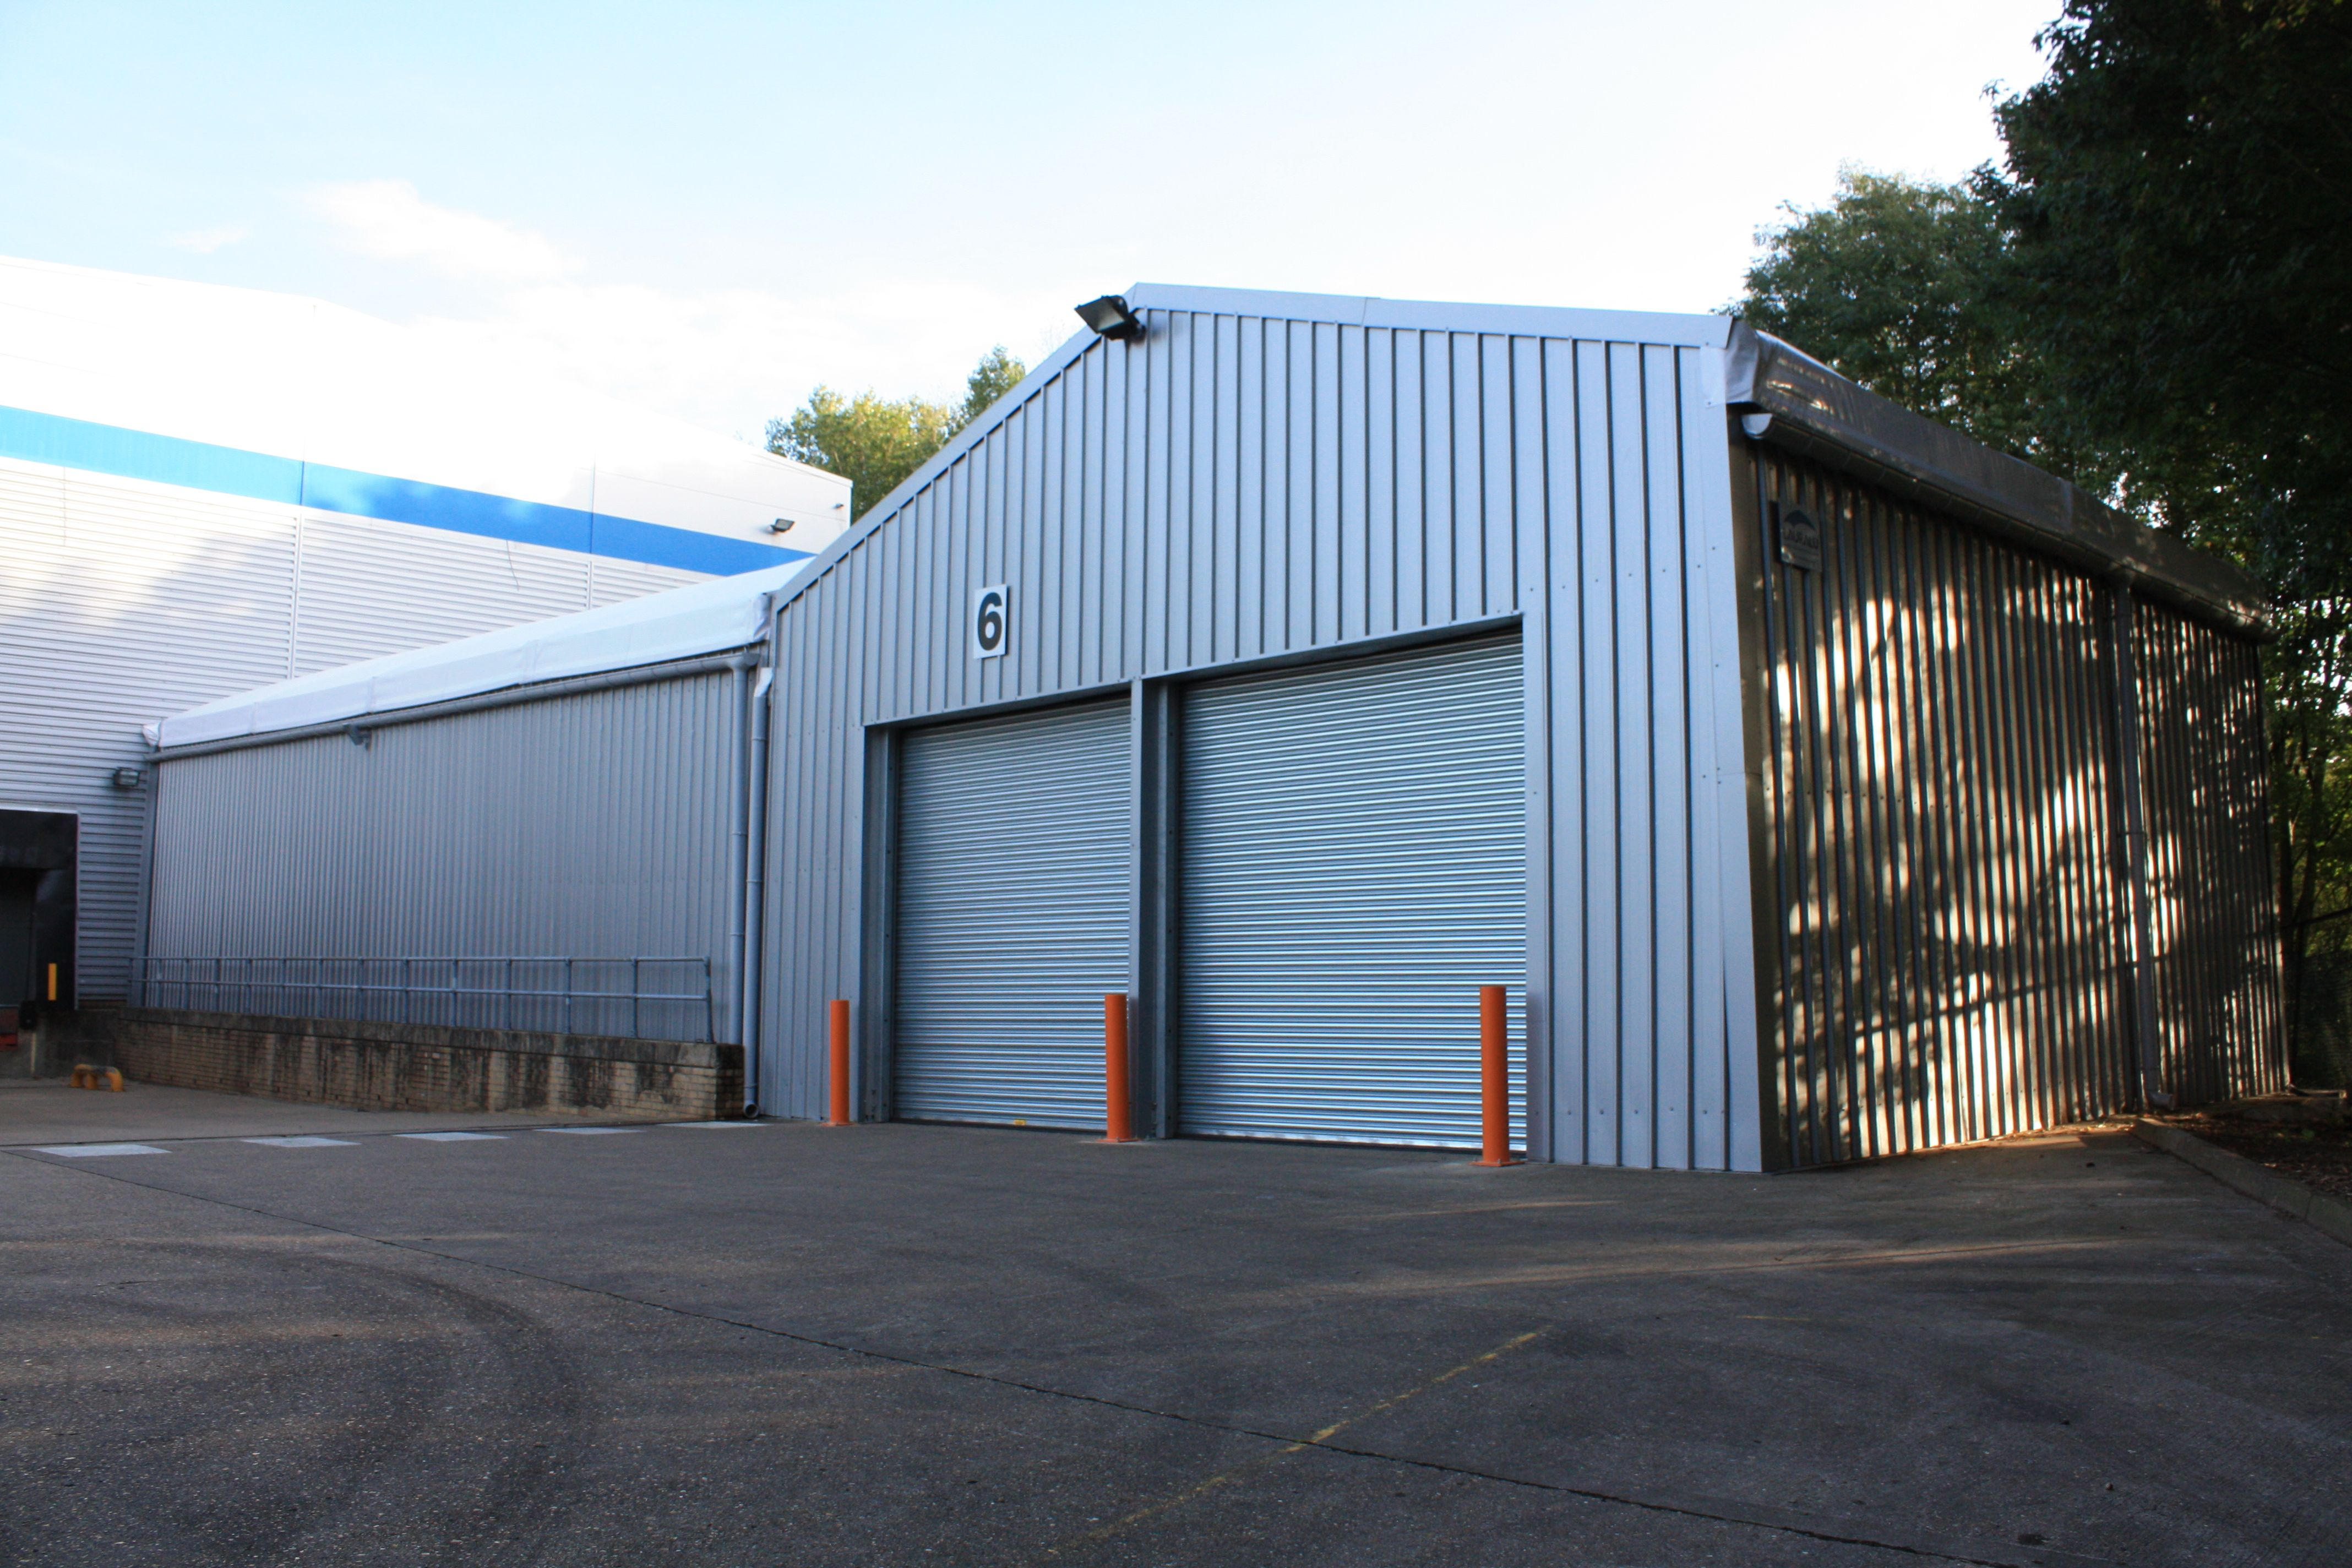 Installation of a temporary #storage and logistics structure in # MiltonKeynes. & Installation of a temporary #storage and logistics structure in ...